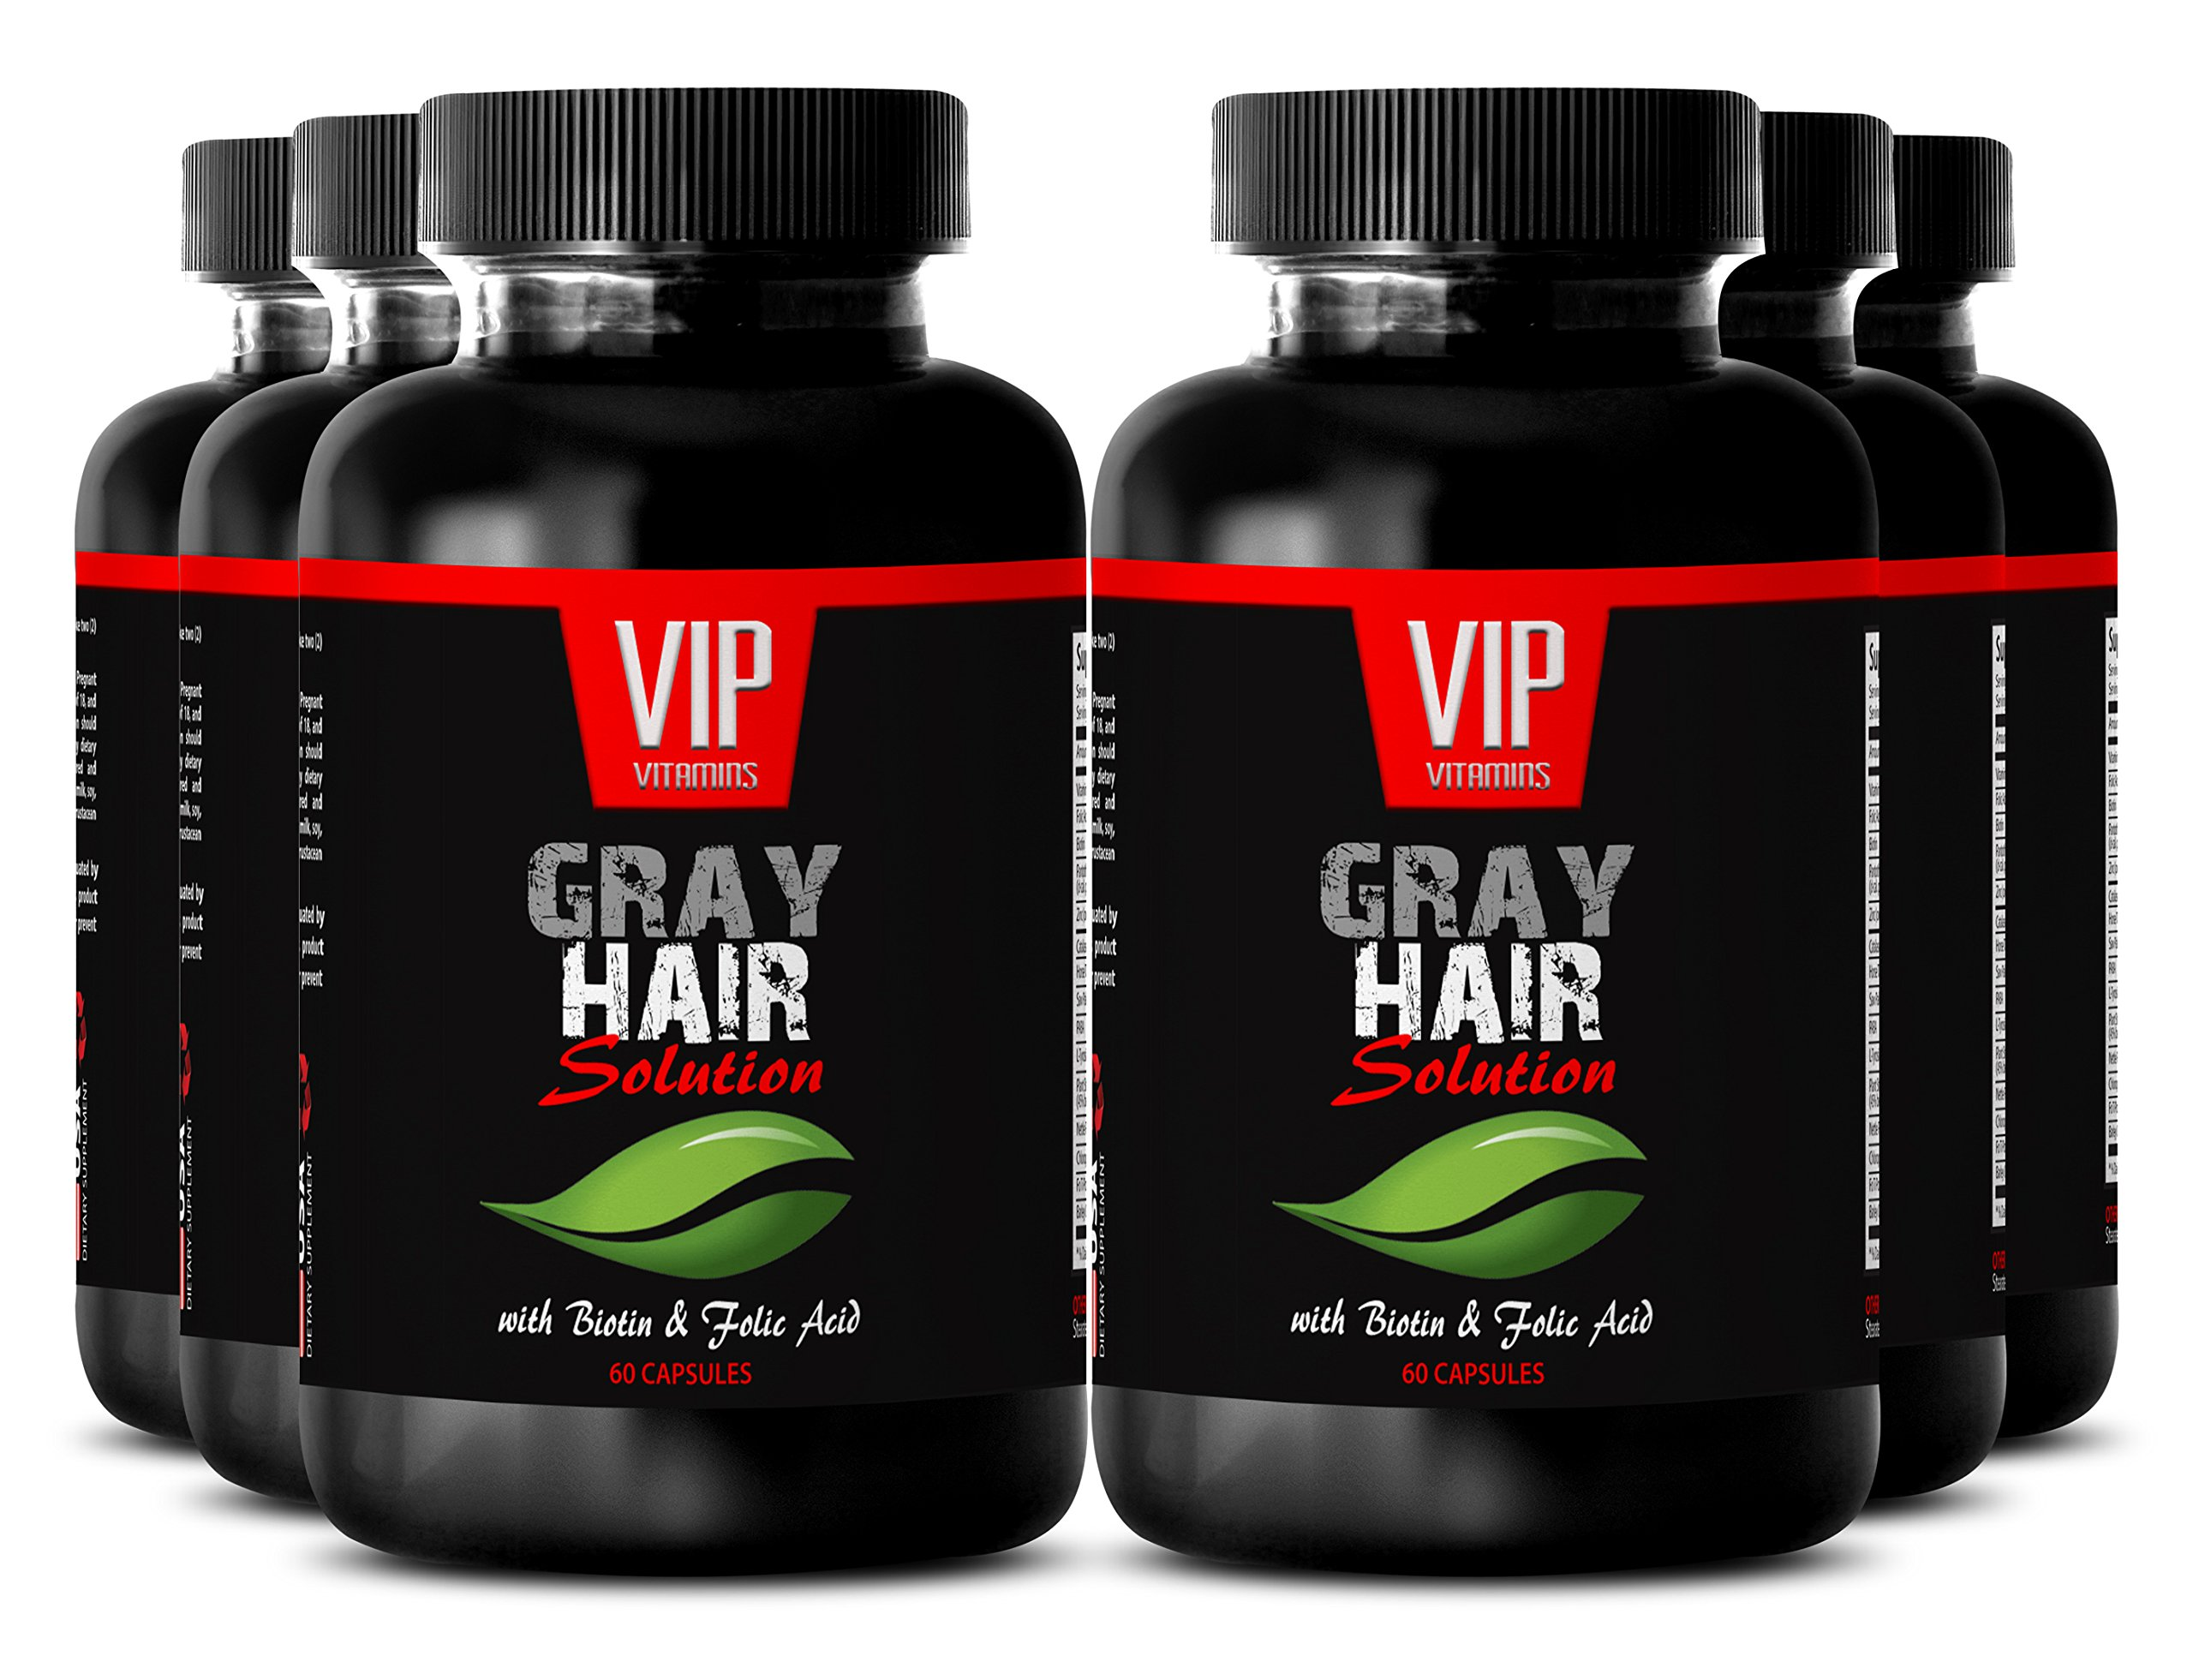 Nettle Root Powder - Gray Hair Solution - Hair growth vitamins (6 Bottles 360 capsules)